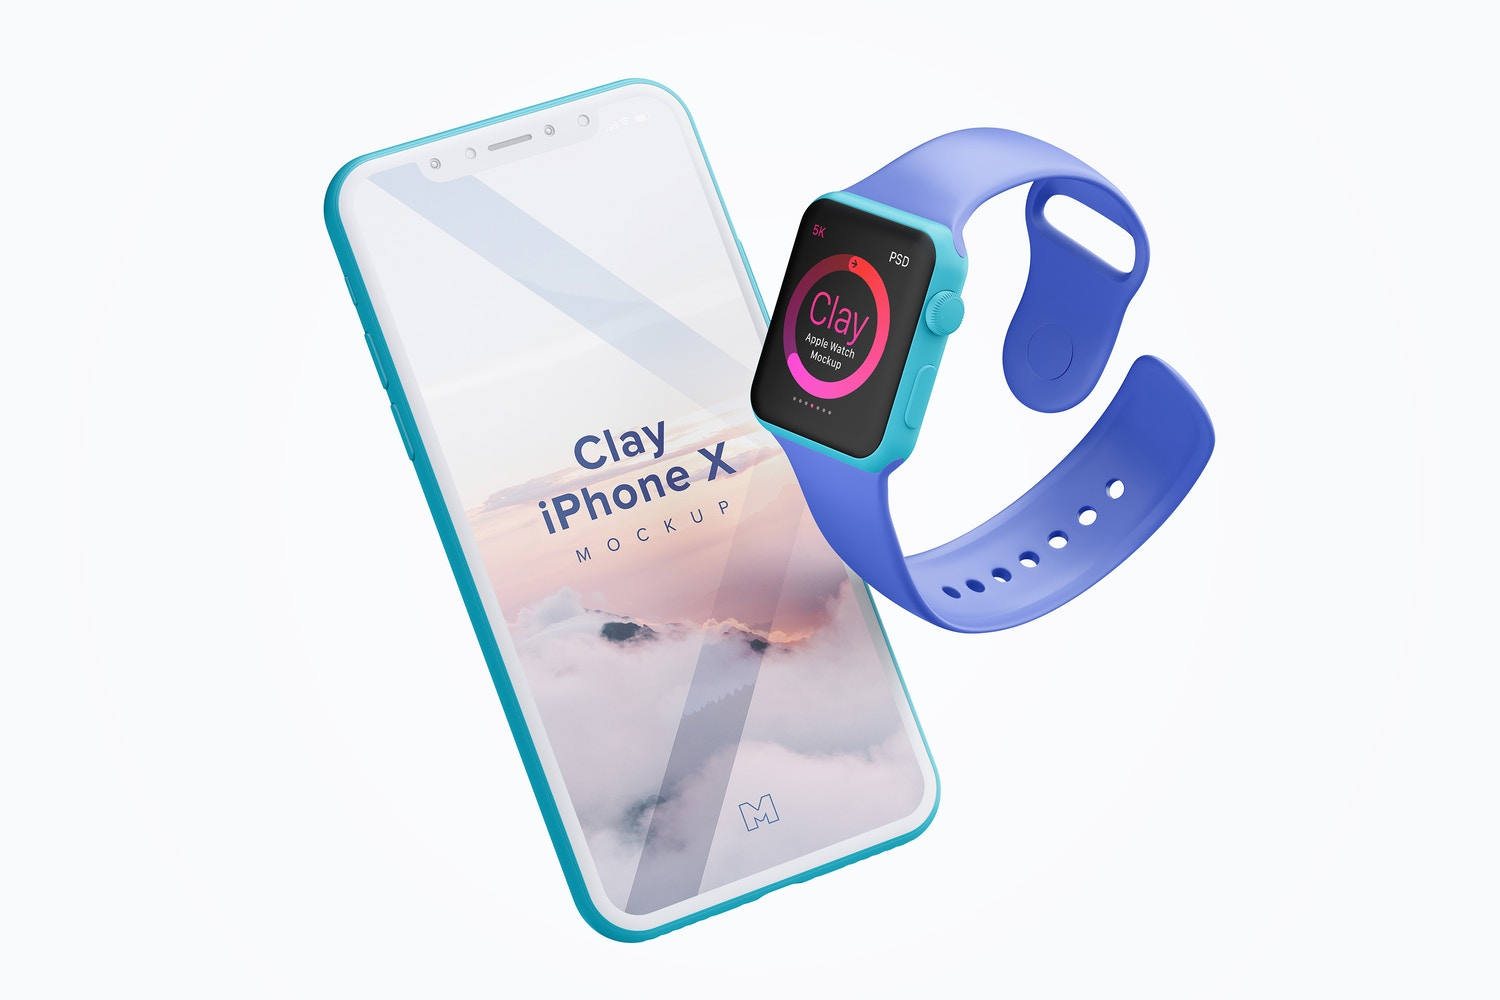 Clay Apple Watch and iPhone X Mockup